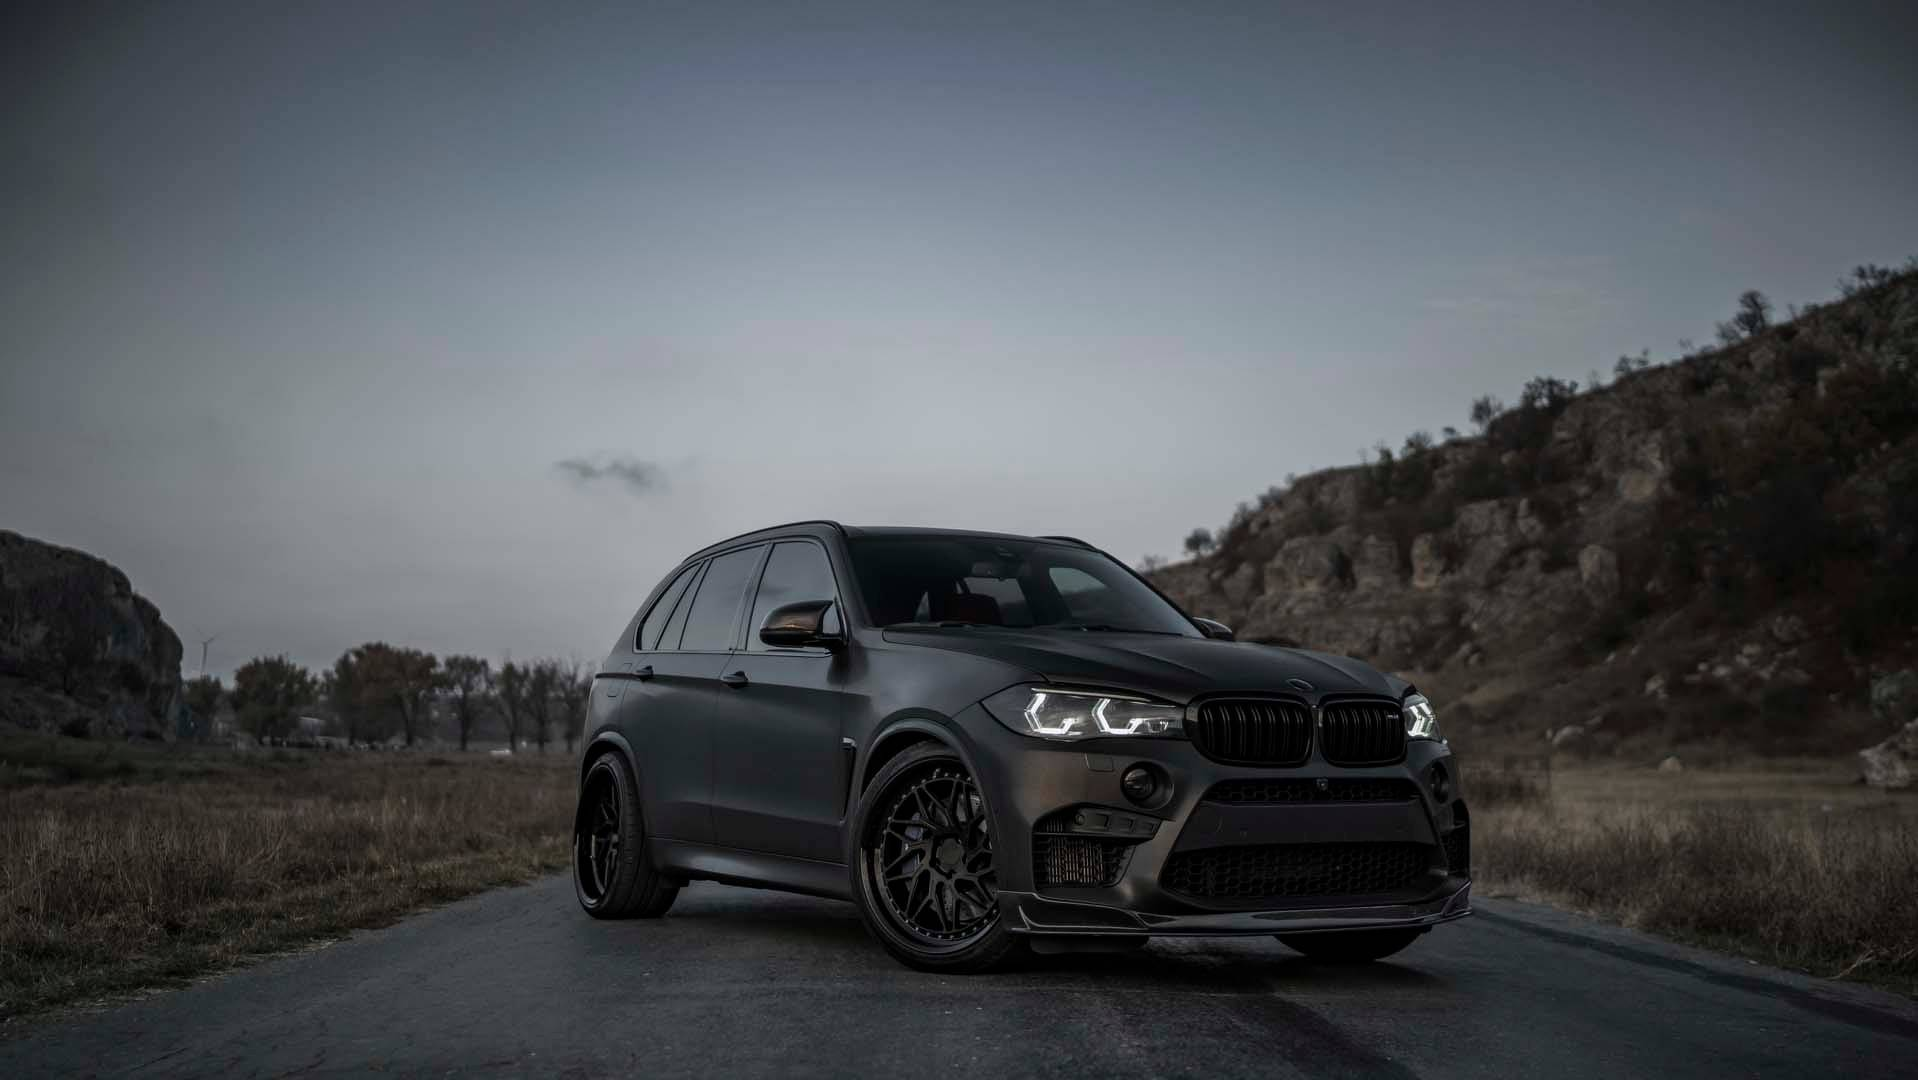 Bmw Aftermarket Parts >> All-Black Z-Performance BMW X5 M Packs 750 HP